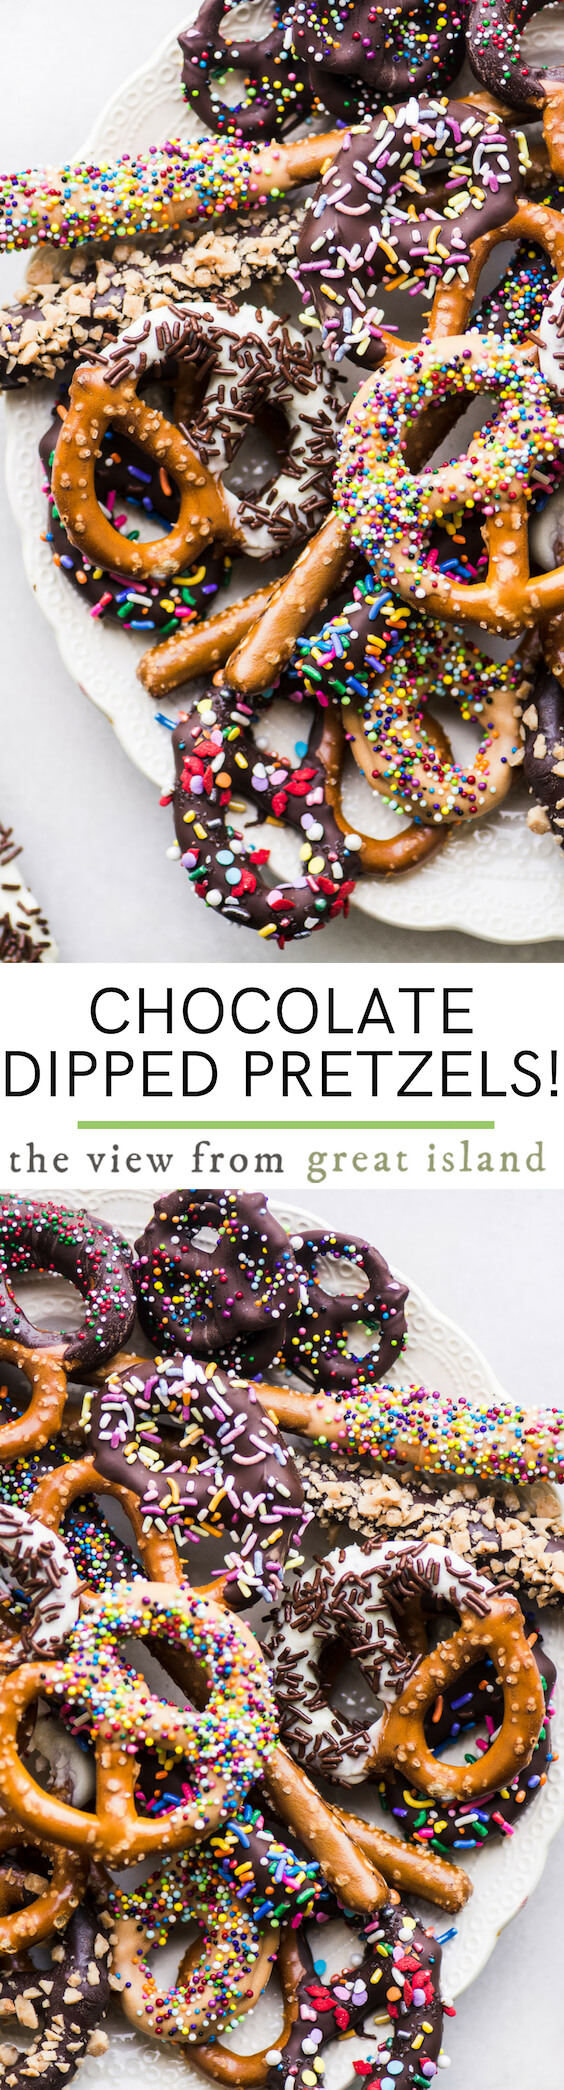 chocolate dipped pretzels pin